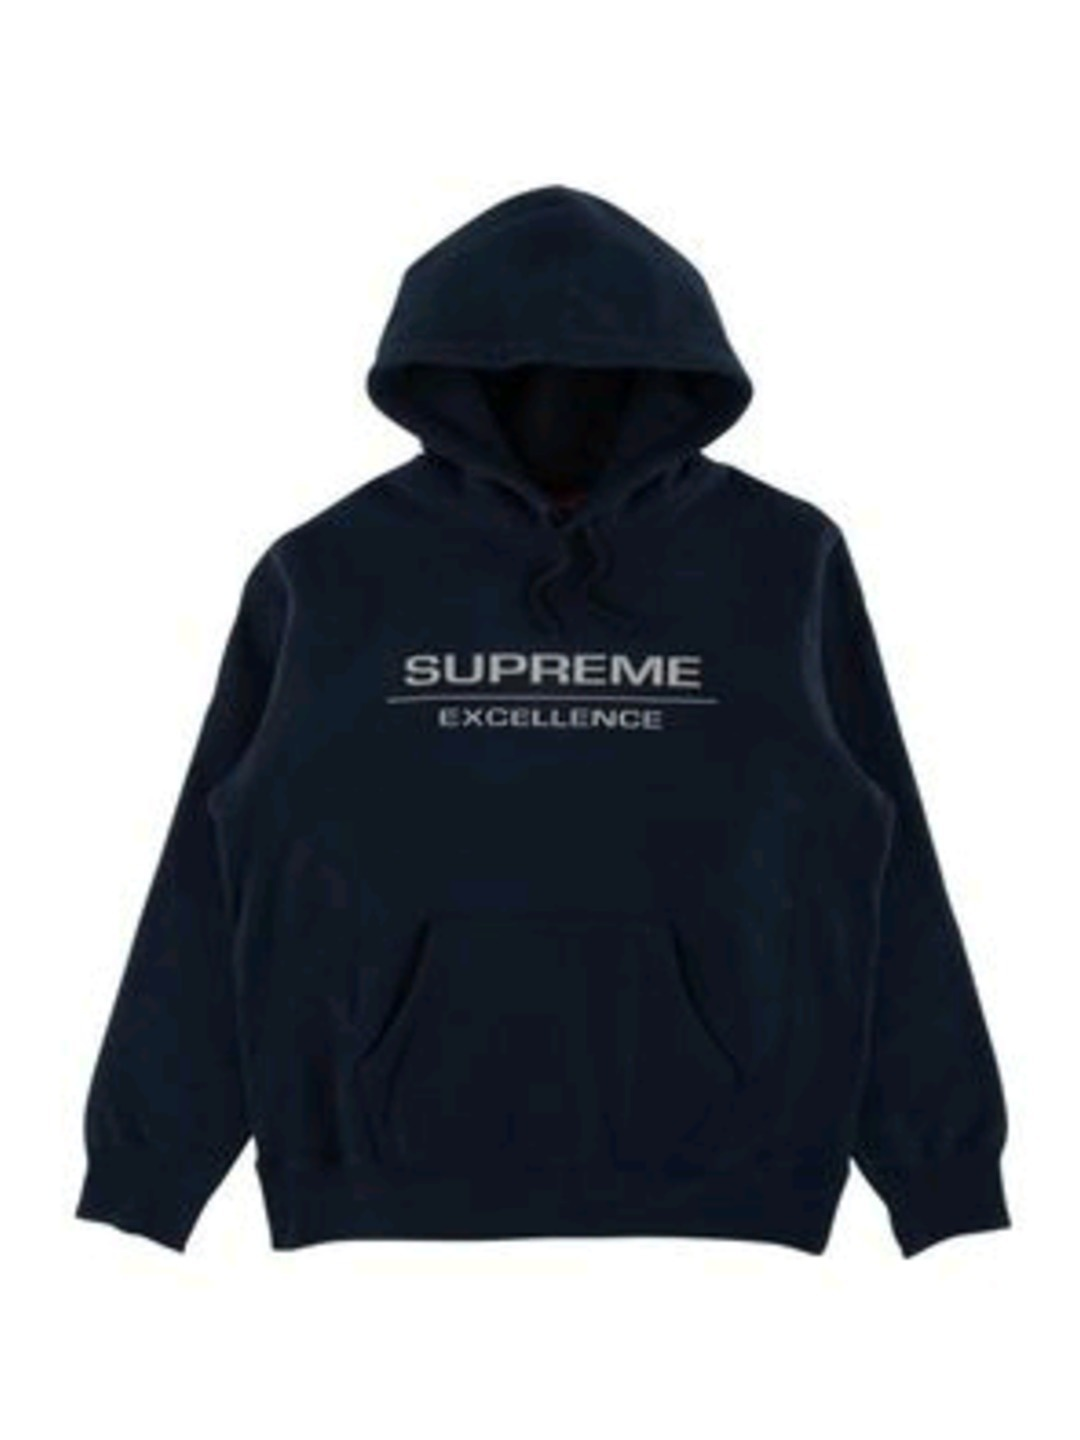 Women's hoodies & sweatshirts - SUPREME photo 1